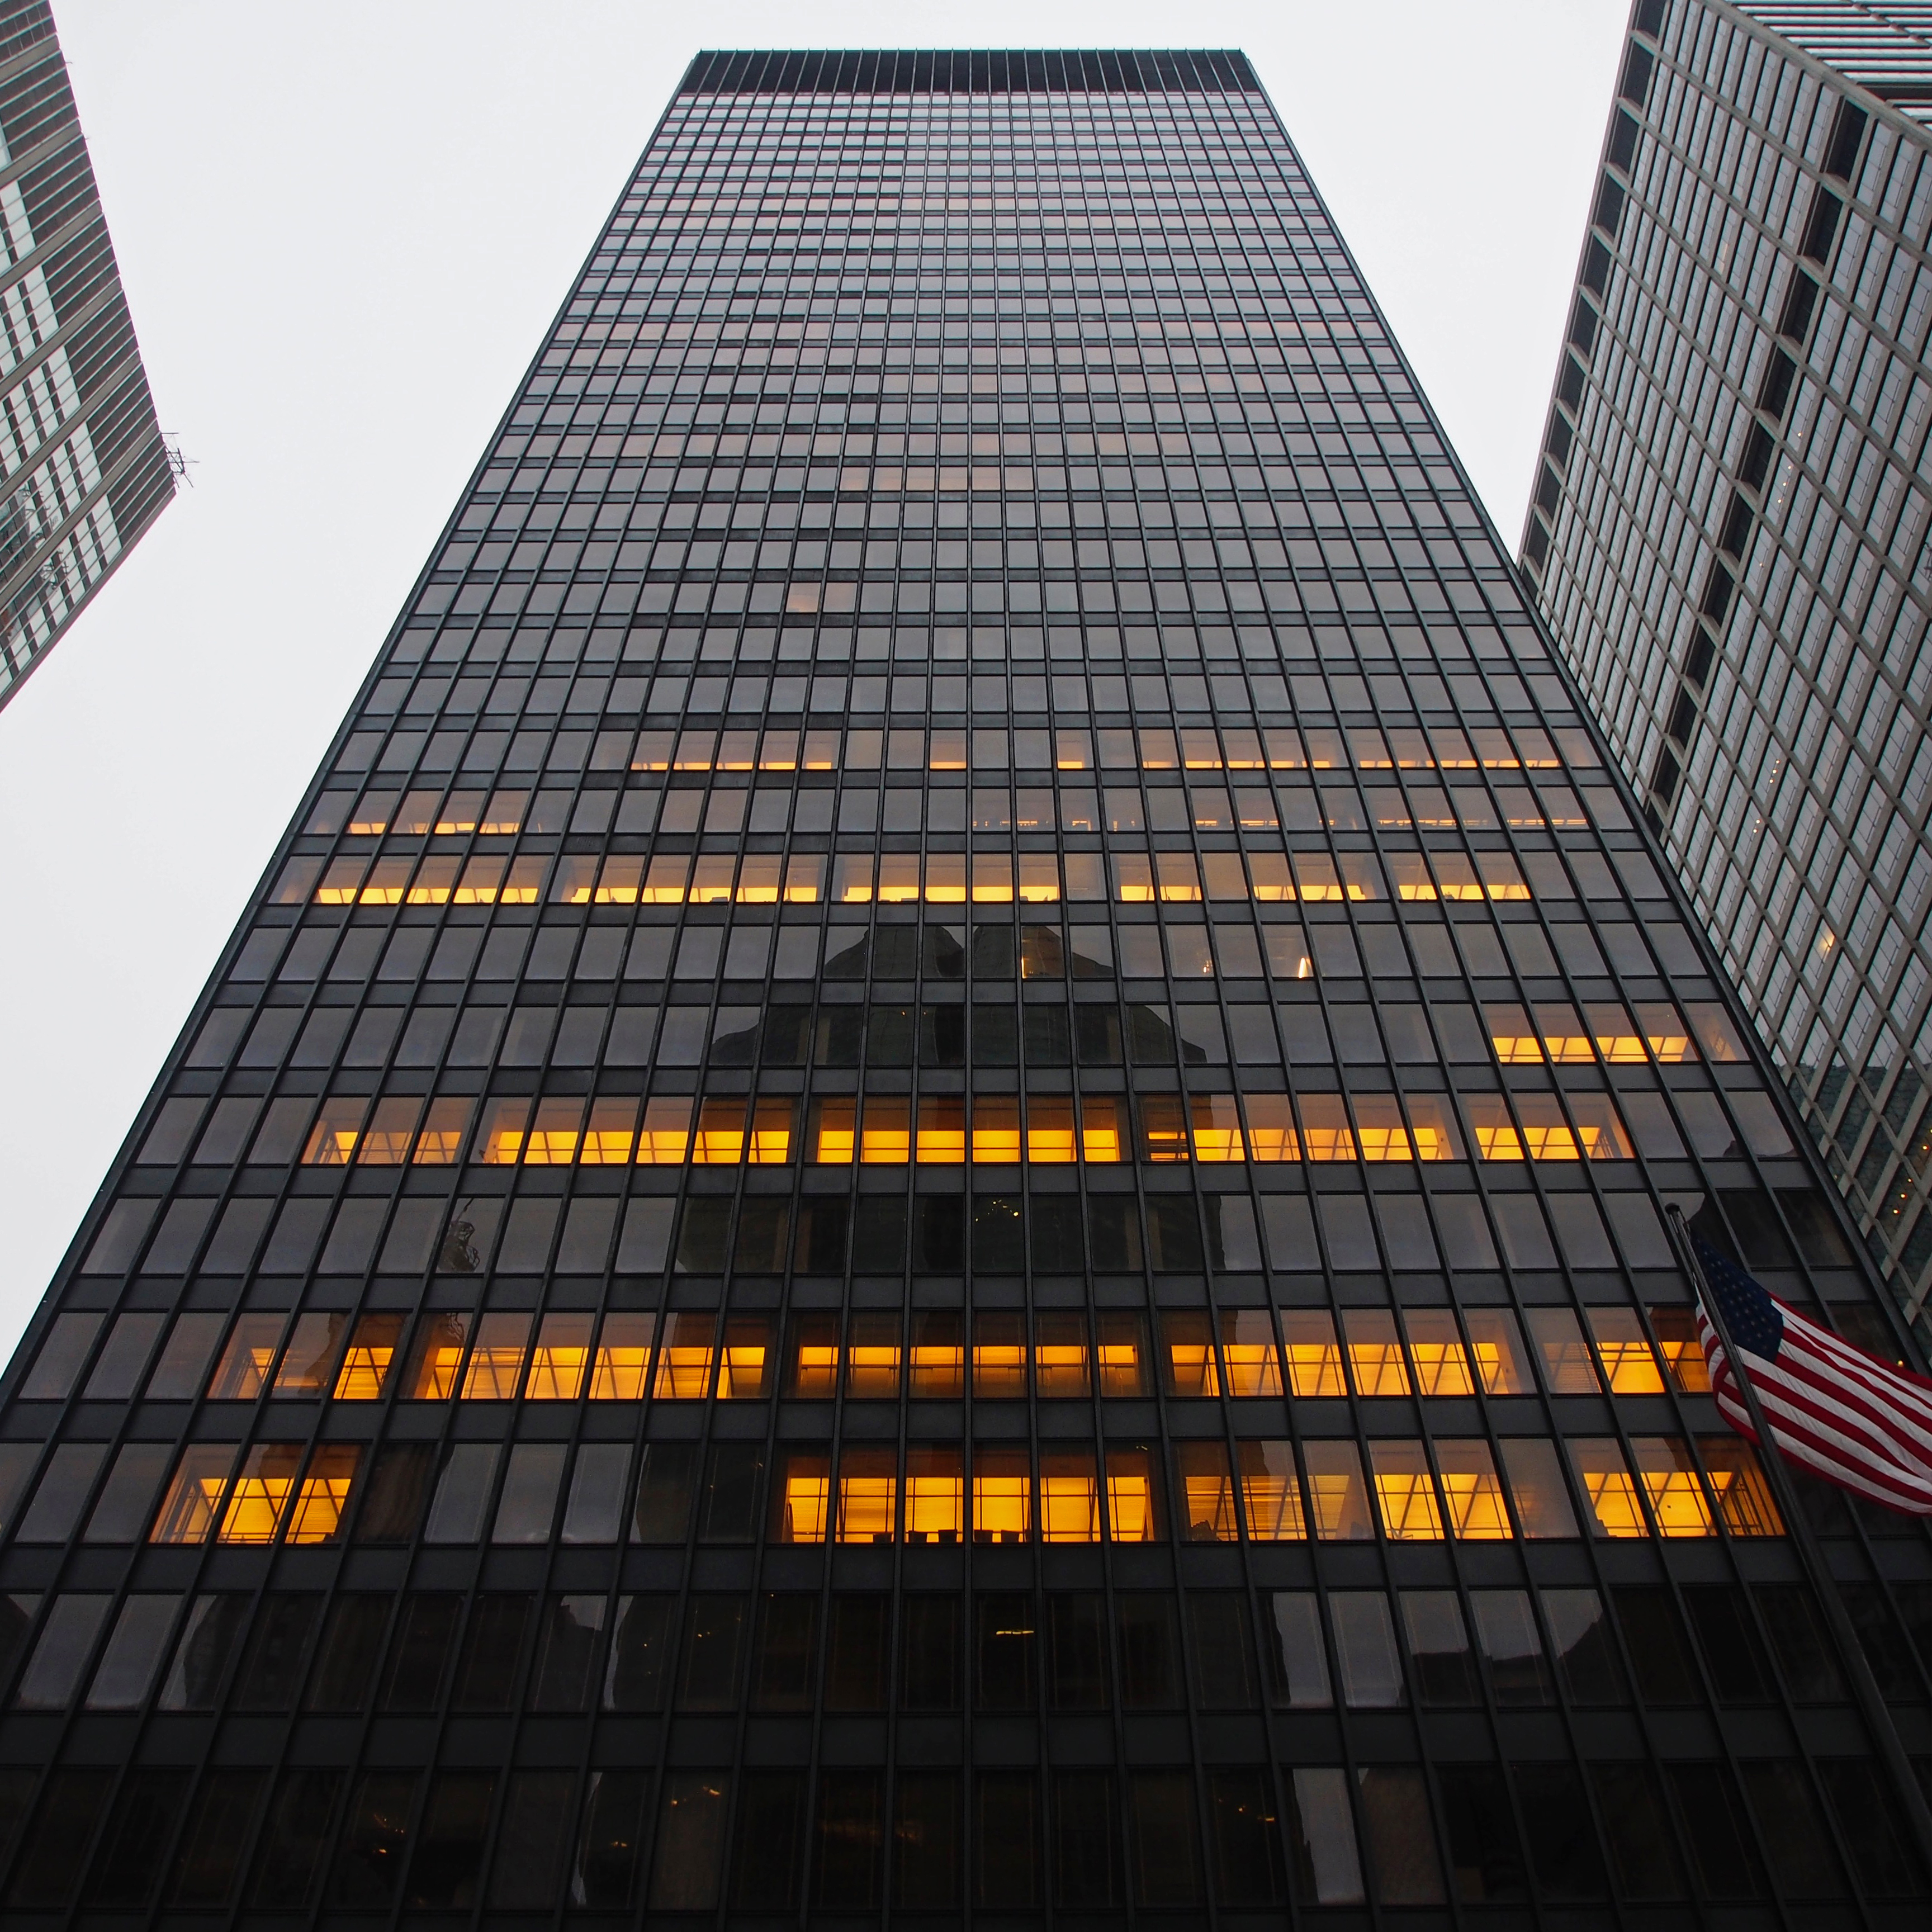 the seagram building essay Mies van der rohe essay sample mies van der rohe introduction ludwig mies van der rohe, along with walter gropius and le corbusier, is widely regarded as one of the pioneering masters of modern architecture.